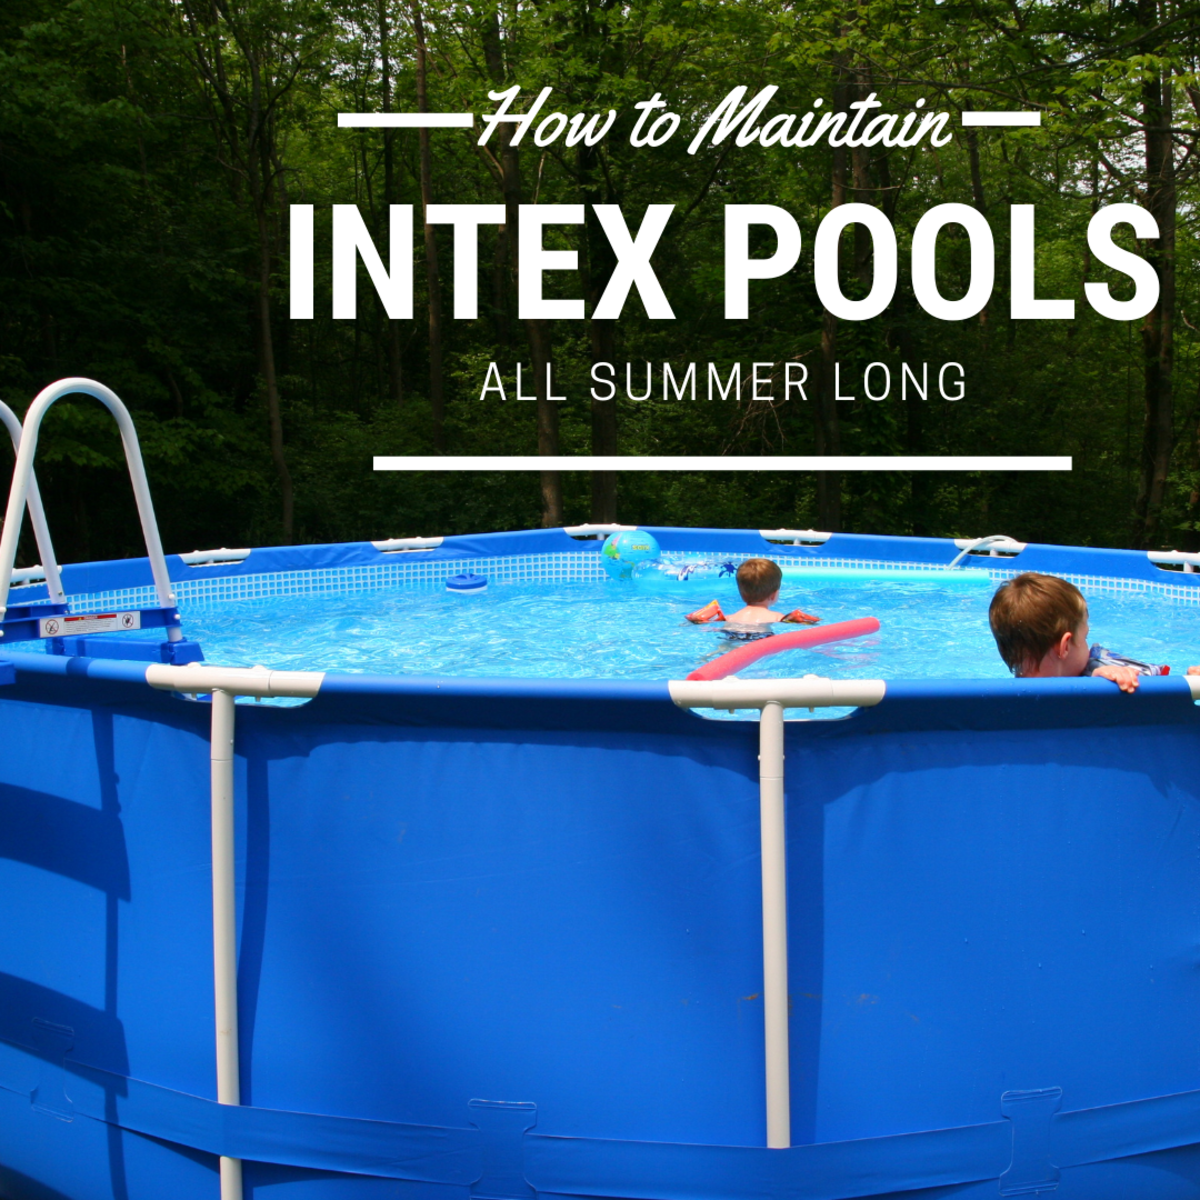 Care for your Intex pool properly to enjoy swimming in crystal clear water all summer long.